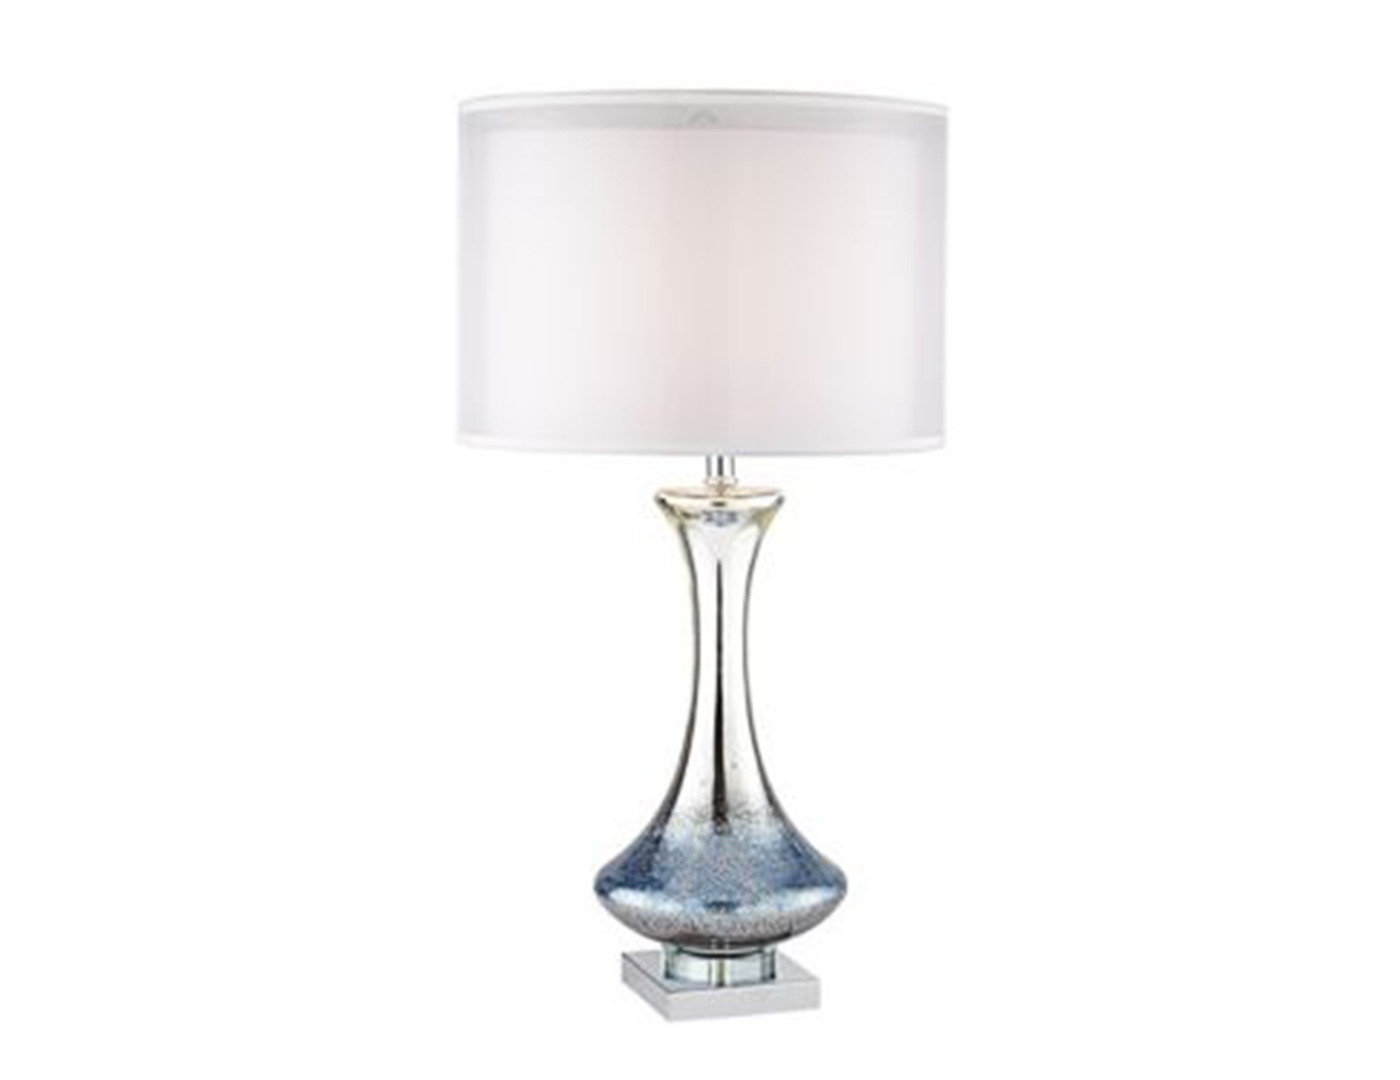 blue mercury glass table lamp - Mercury Glass Table Lamp